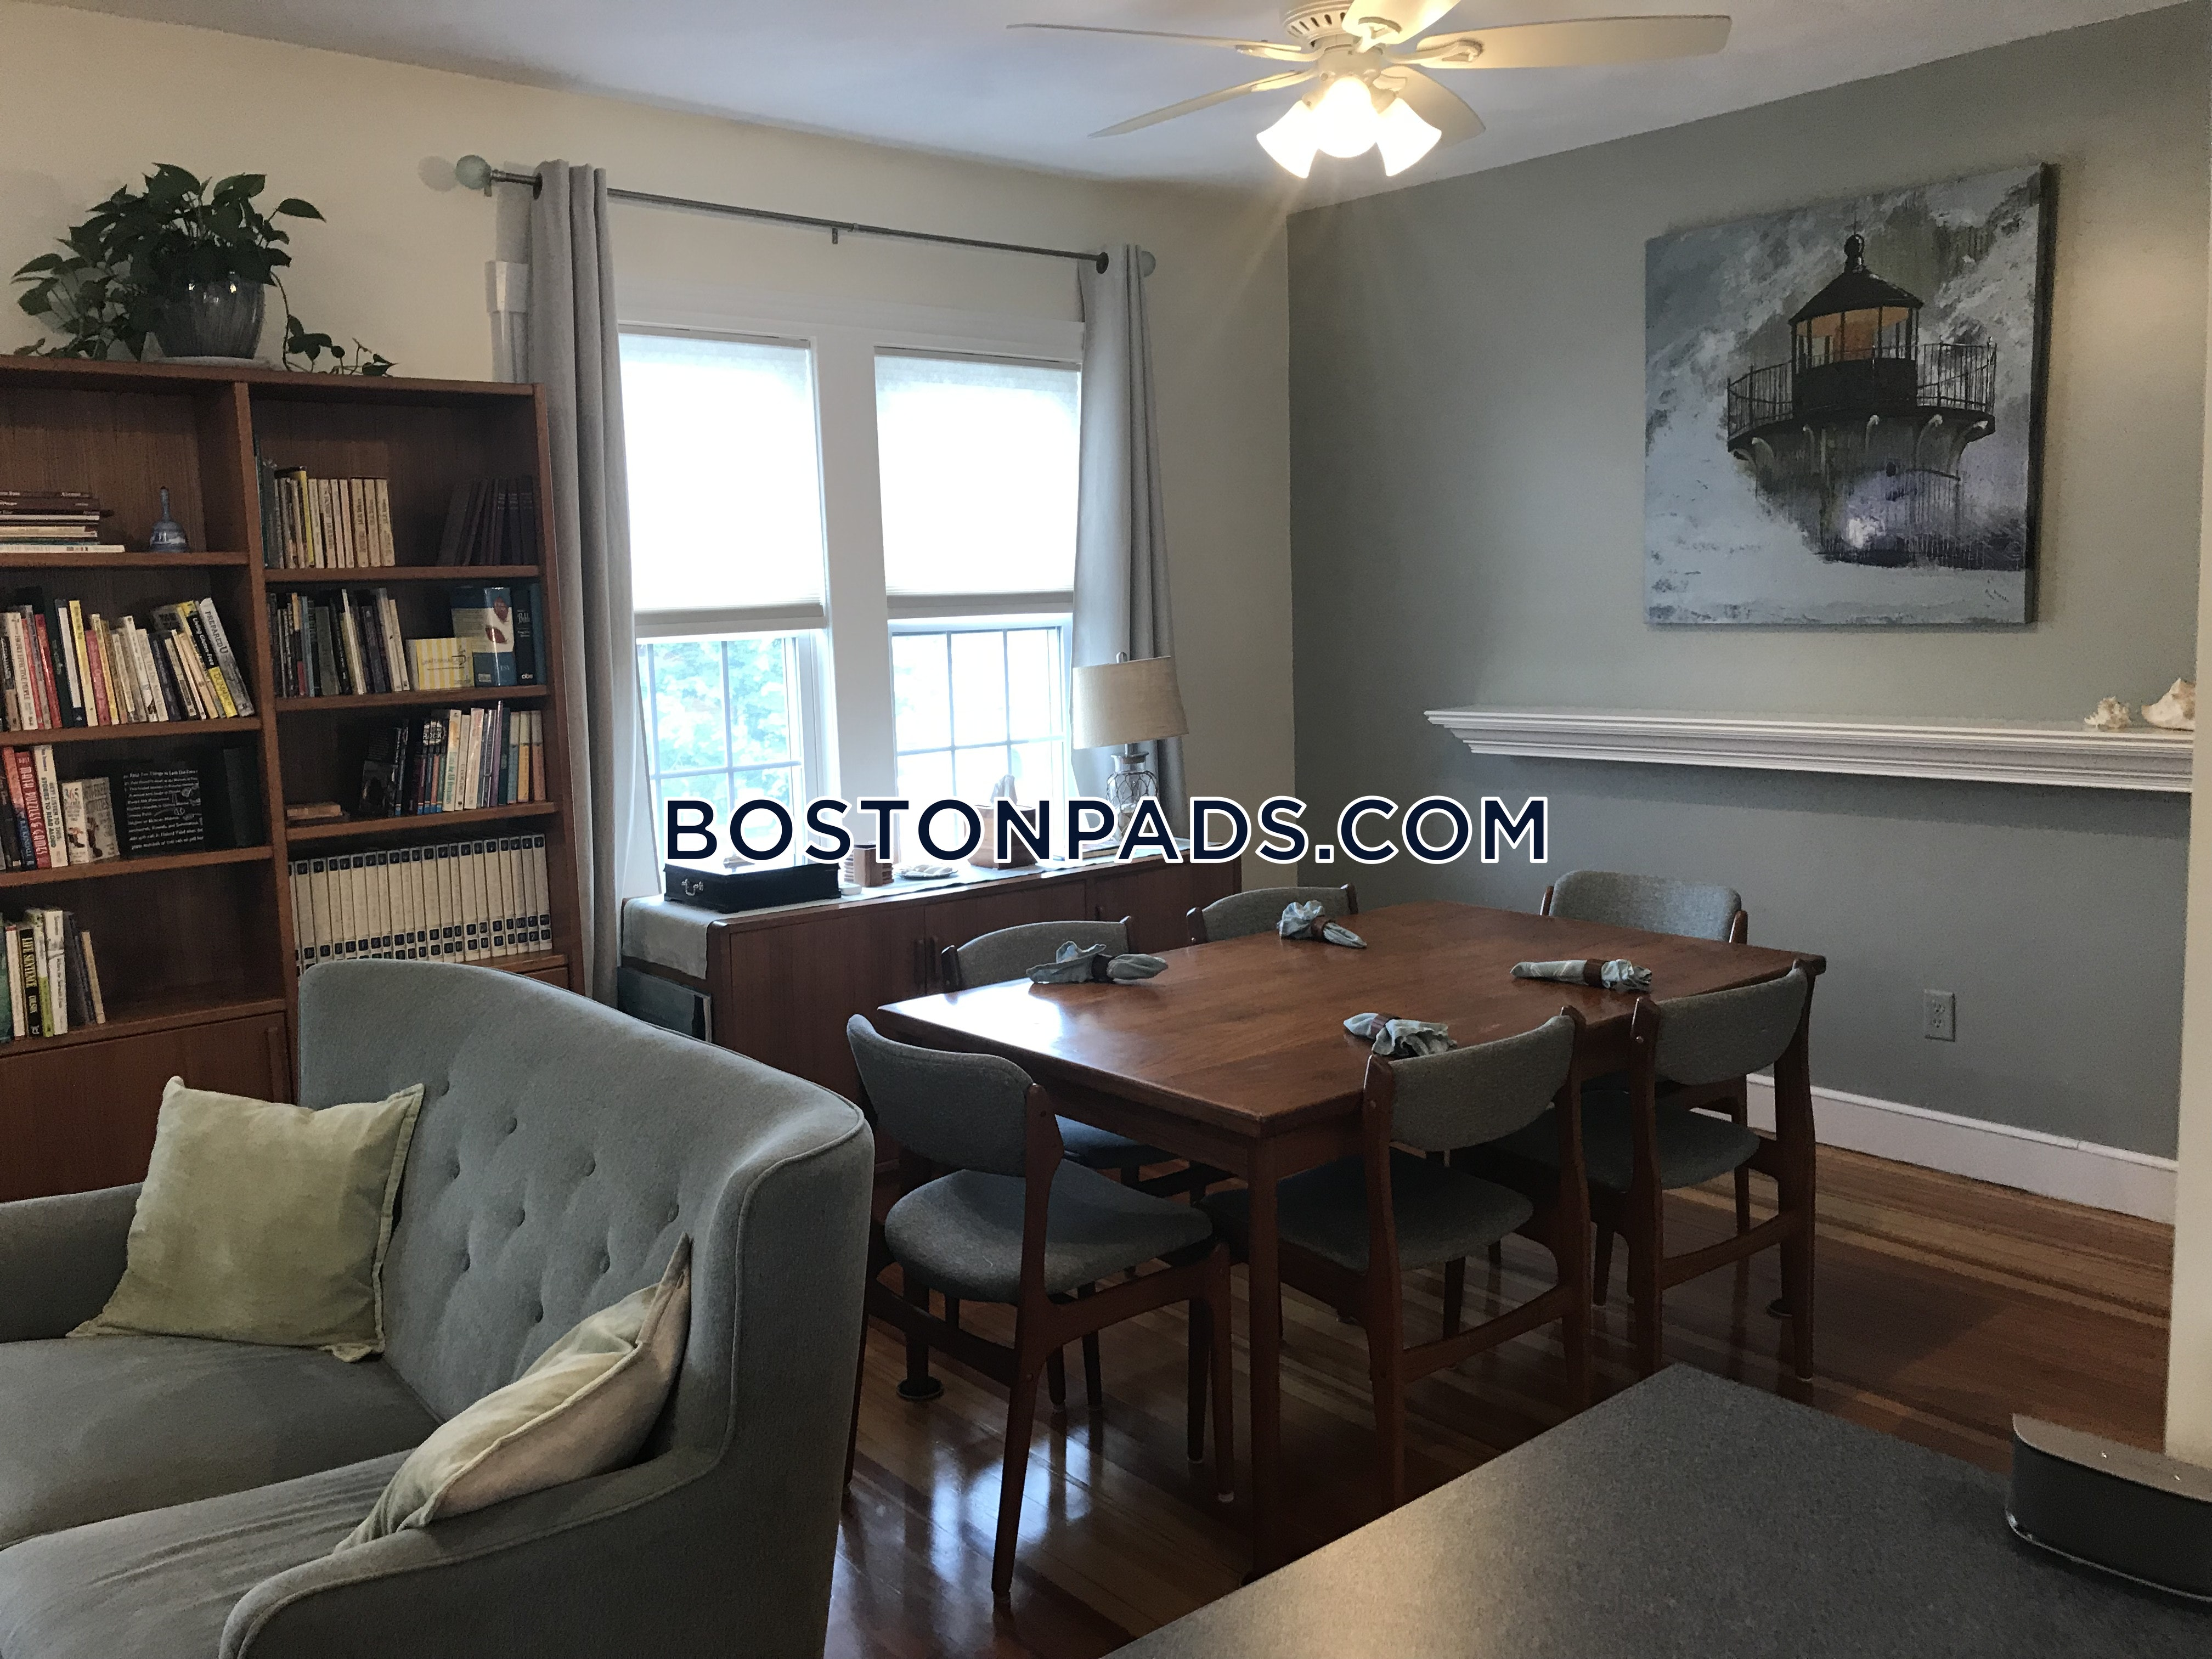 CAMBRIDGE - CENTRAL SQUARE/CAMBRIDGEPORT - $3,300